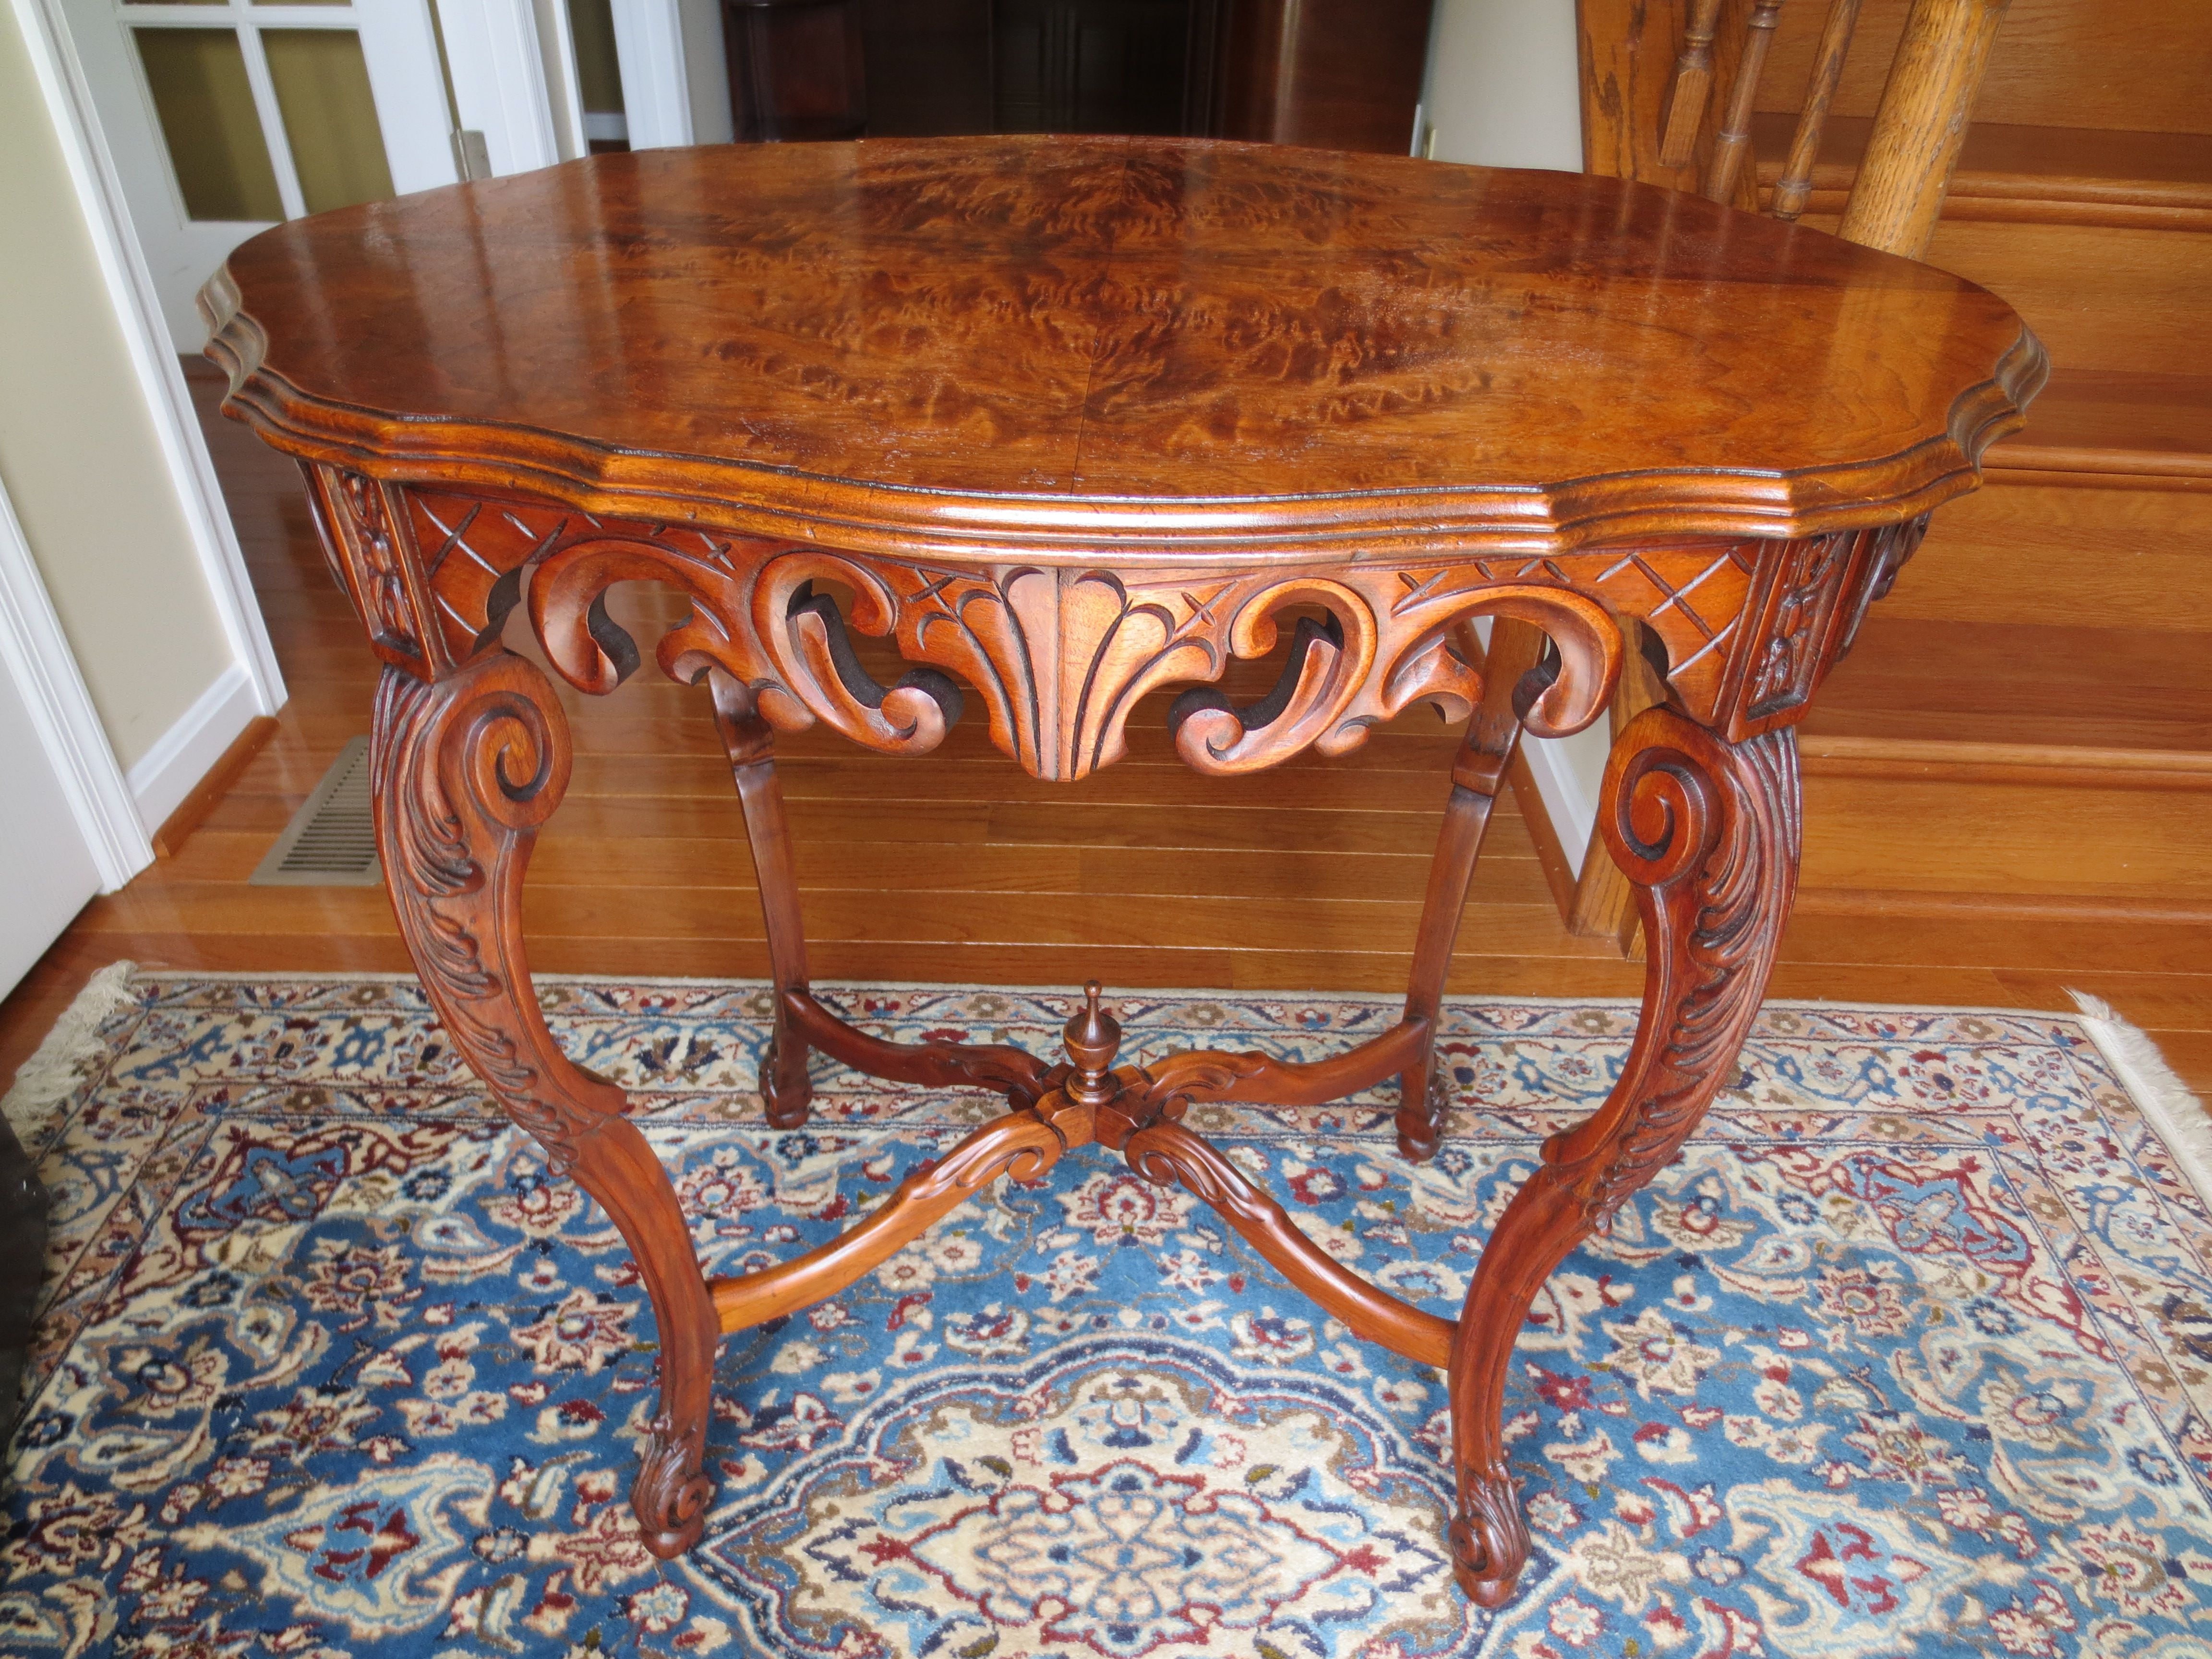 Early 1900s Walnut Carved Table After Restoration Antique Furniture Old